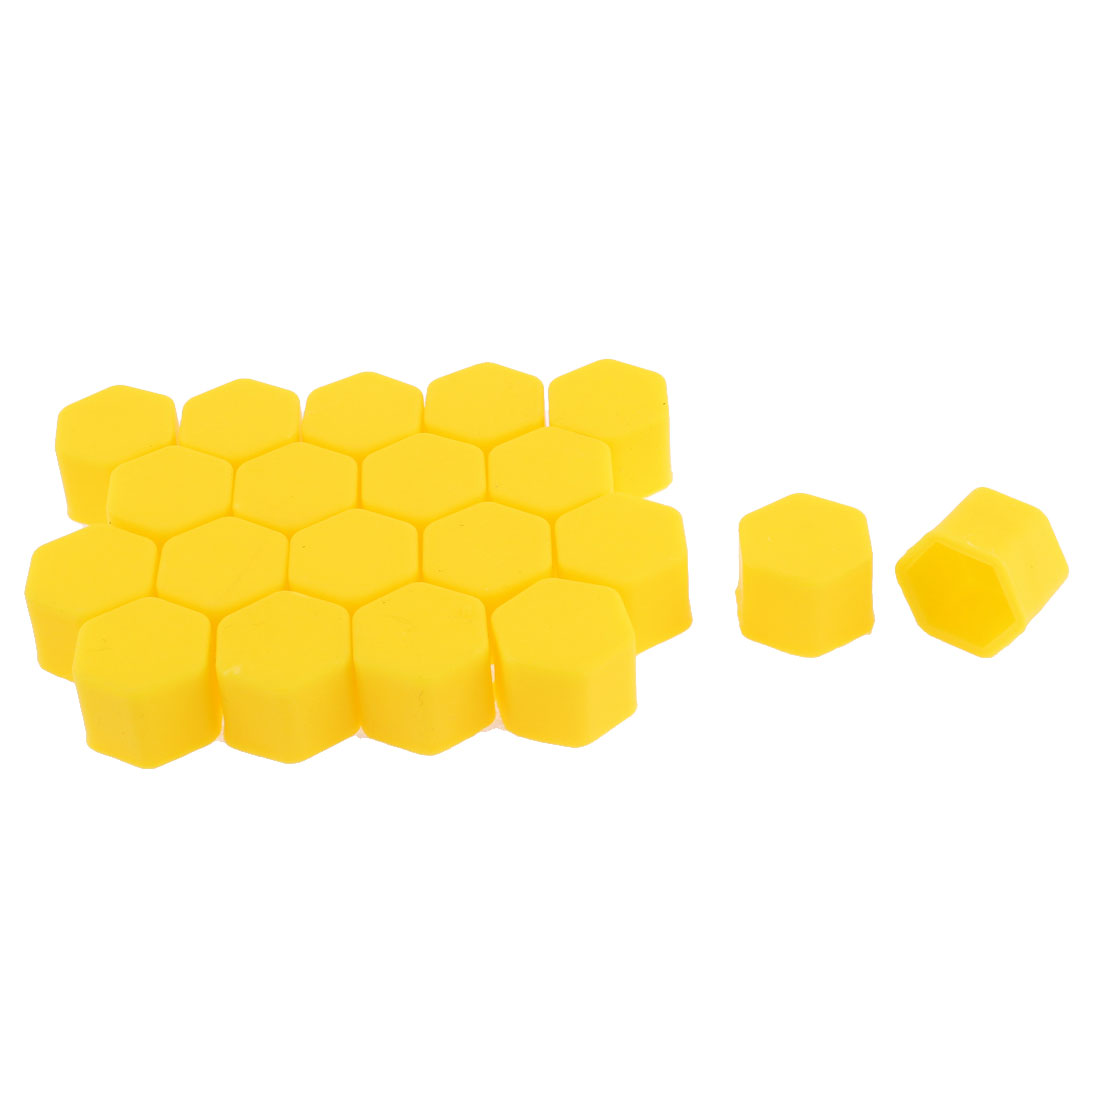 Yellow Wheel Tyre Screw Hub Cover Protective Cap 19mm 20pcs